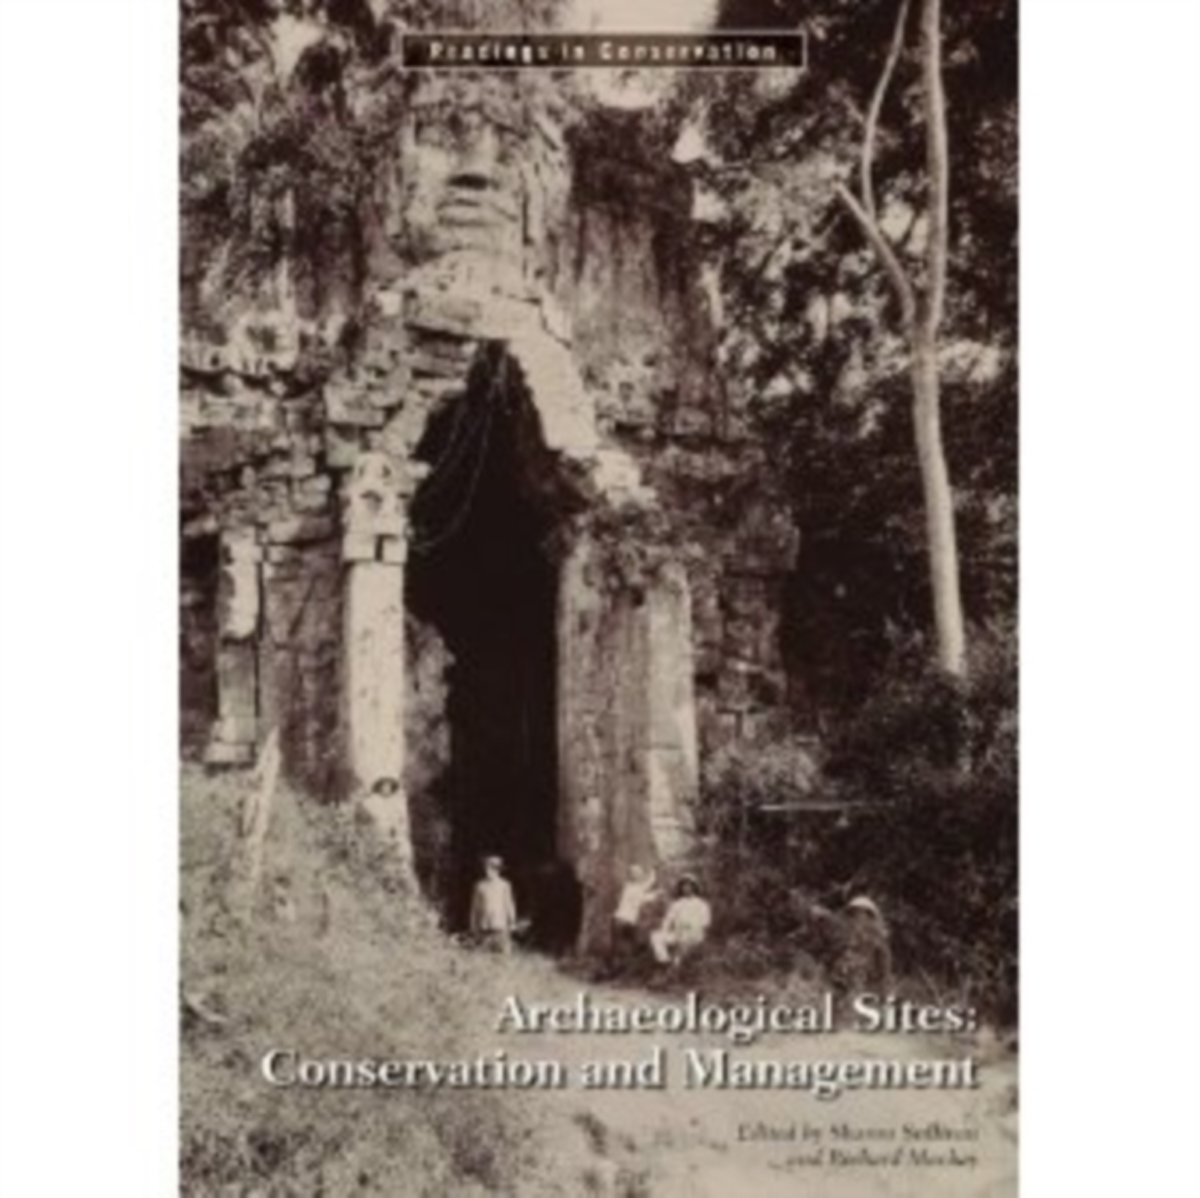 Archaeological Sites - Conservation and Management